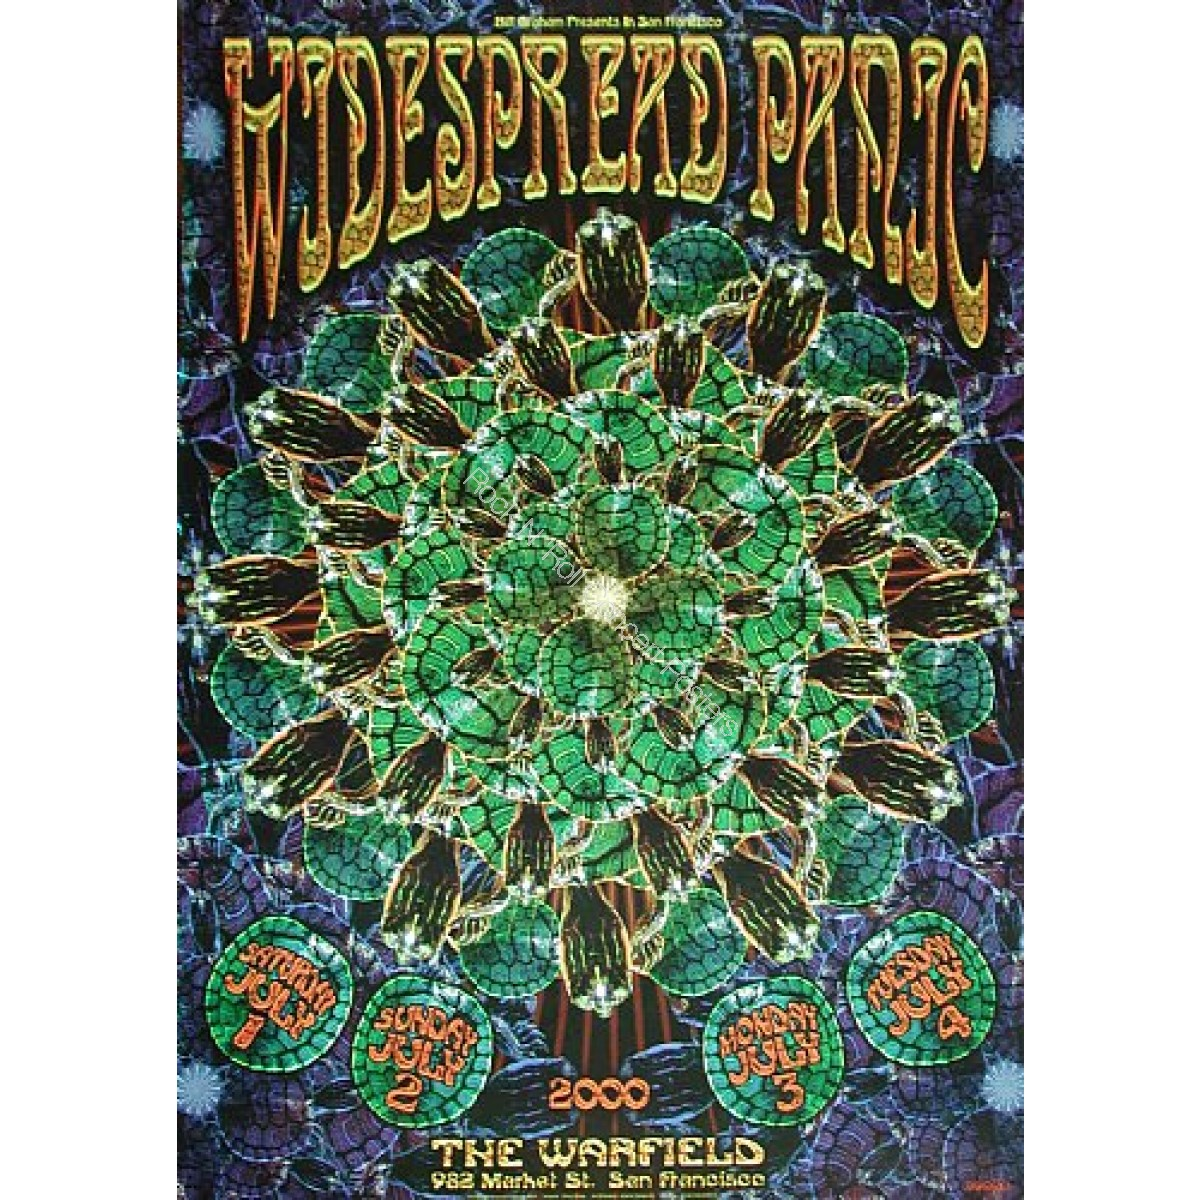 Widespread Panic @ The Warfield Theatre 7/1-4/00